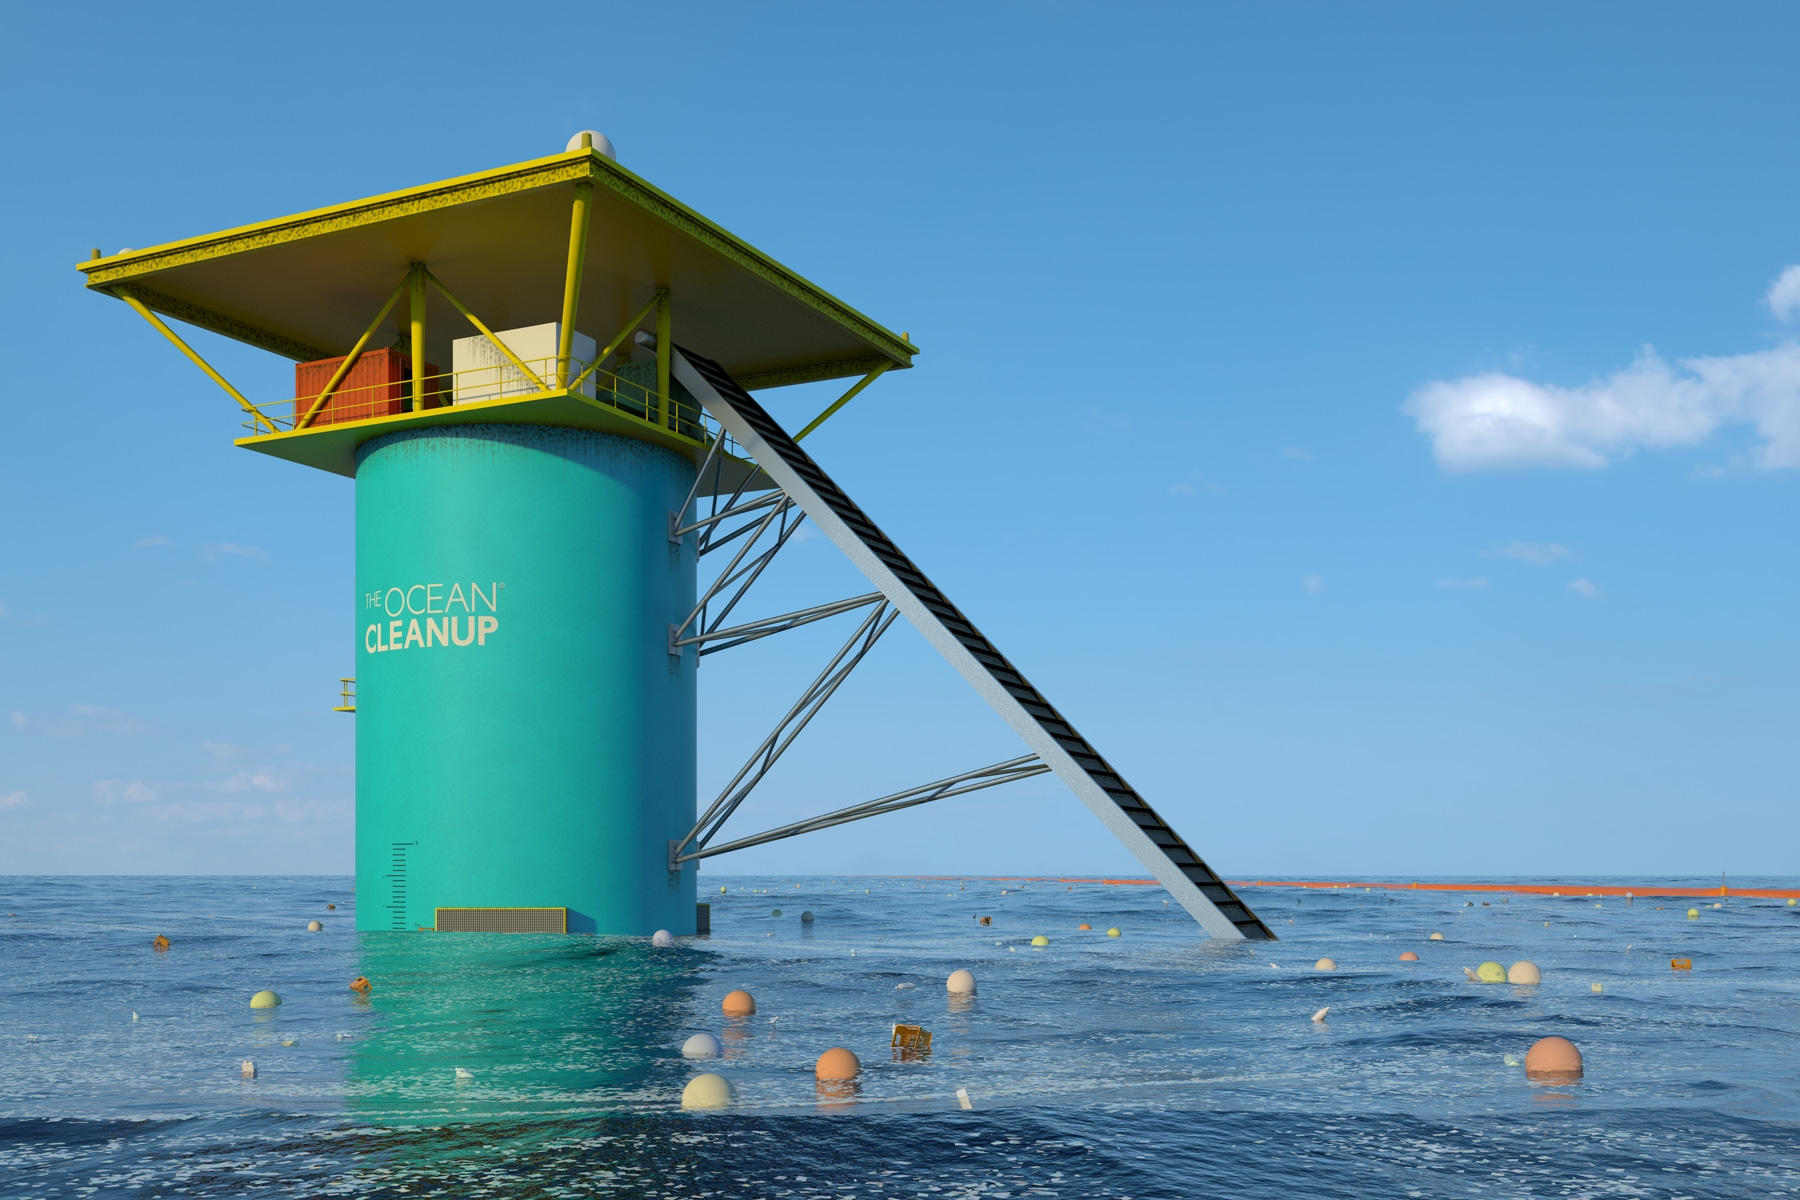 The Ocean Cleanup_2